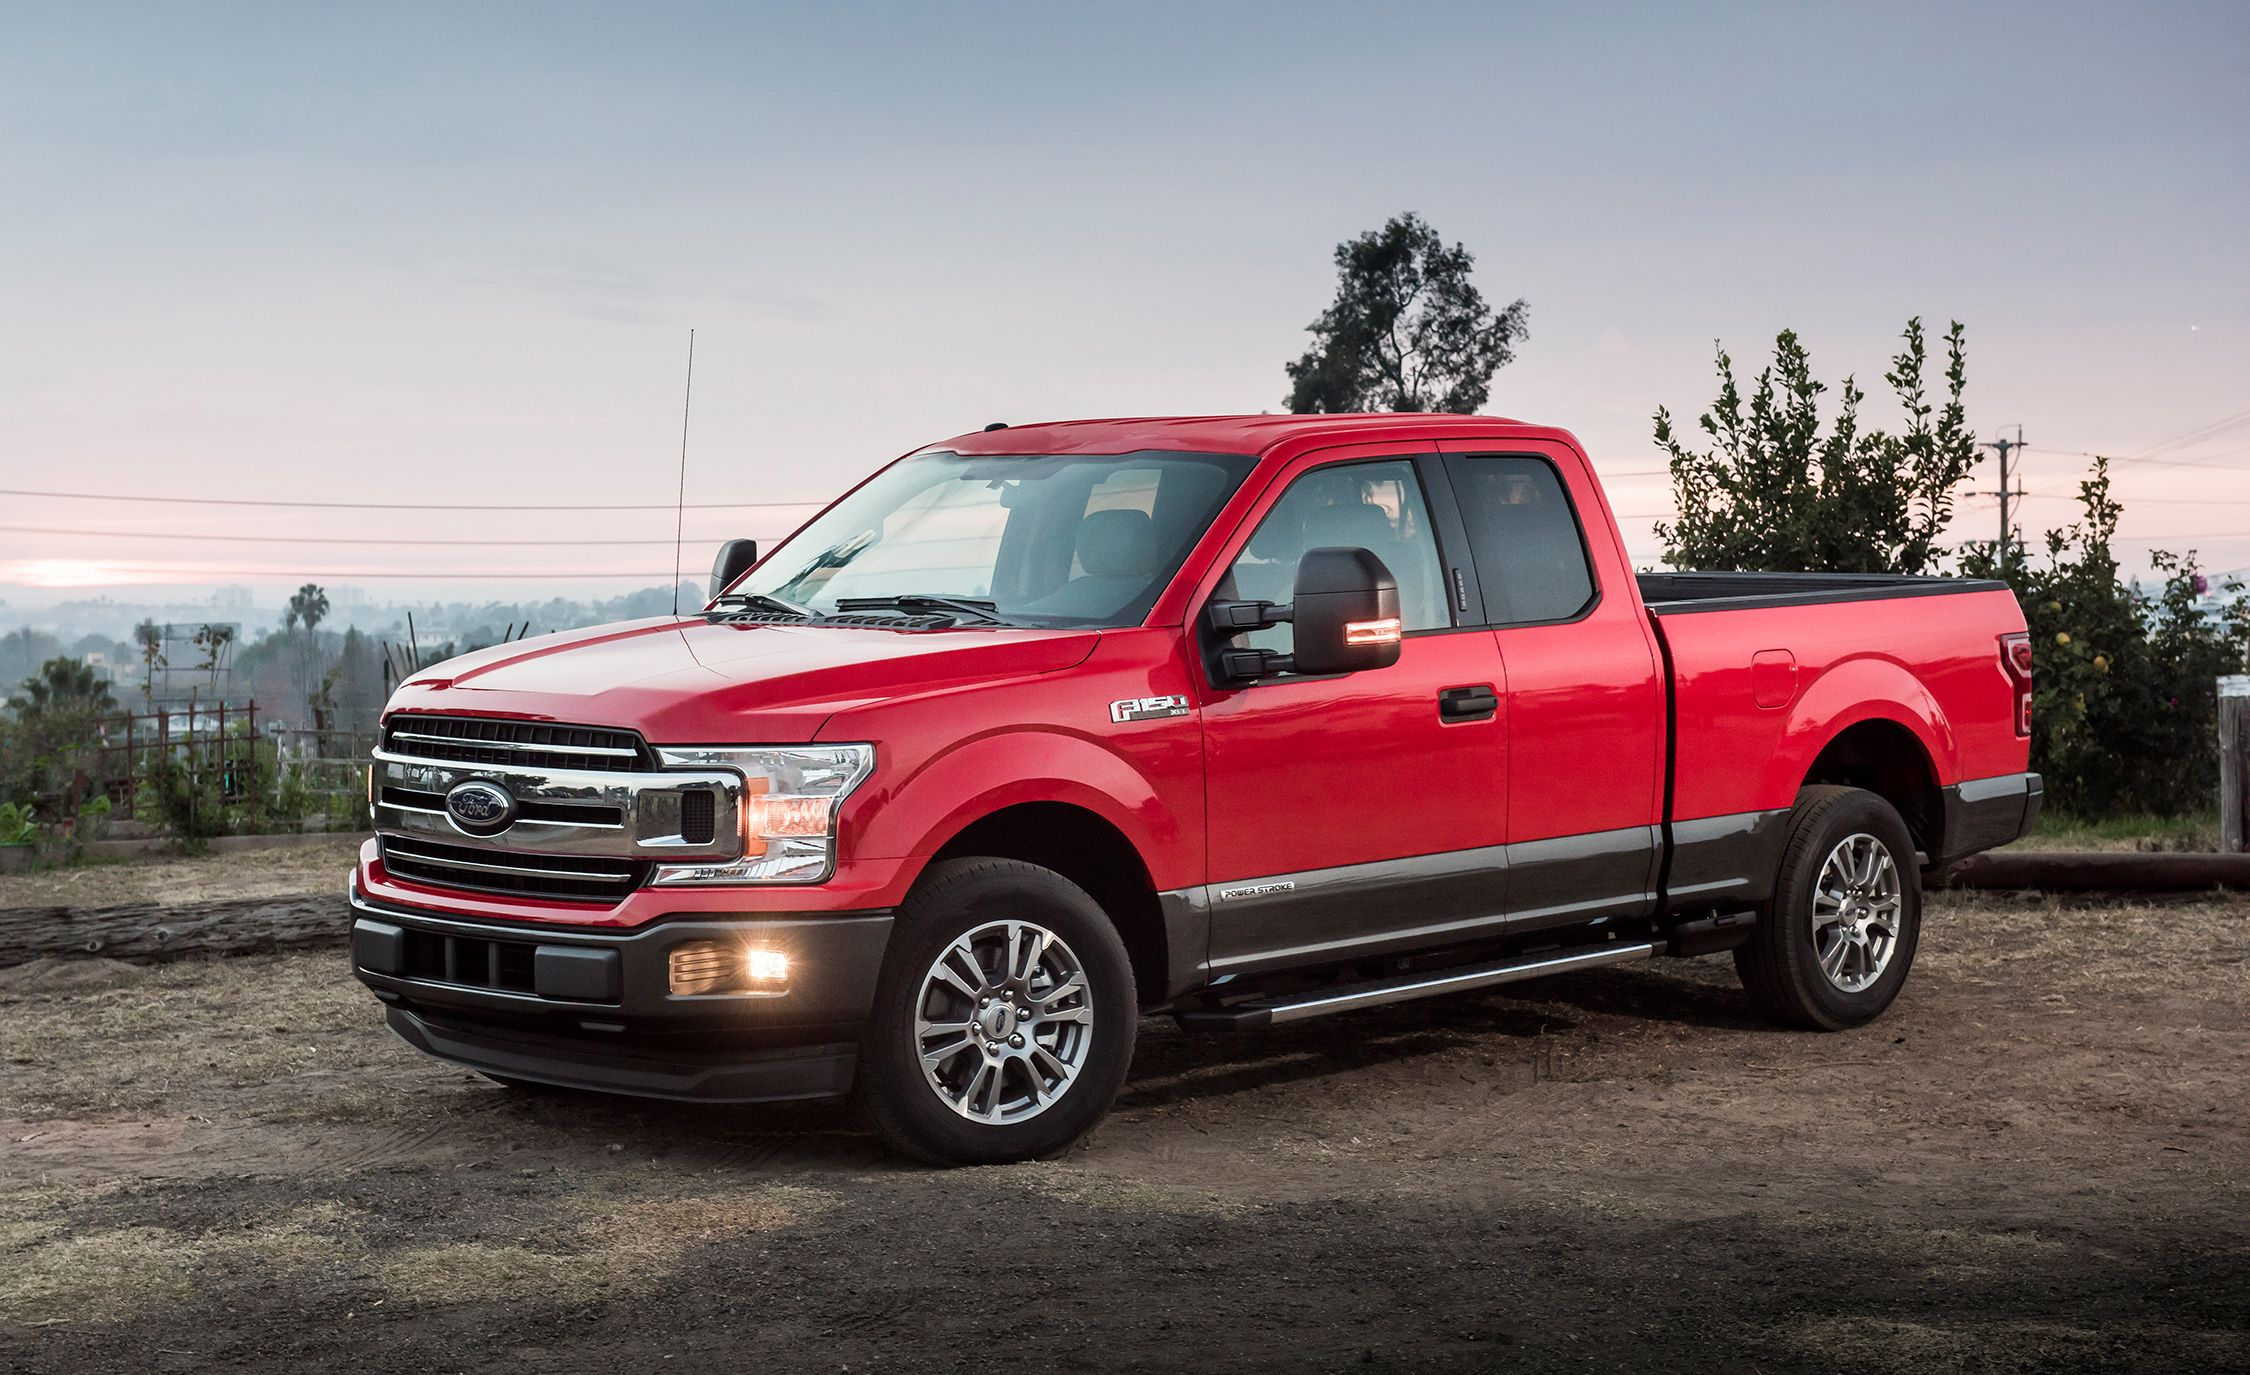 All New Diesel Cars, Trucks, and SUVs for Sale in the U S  in 2019